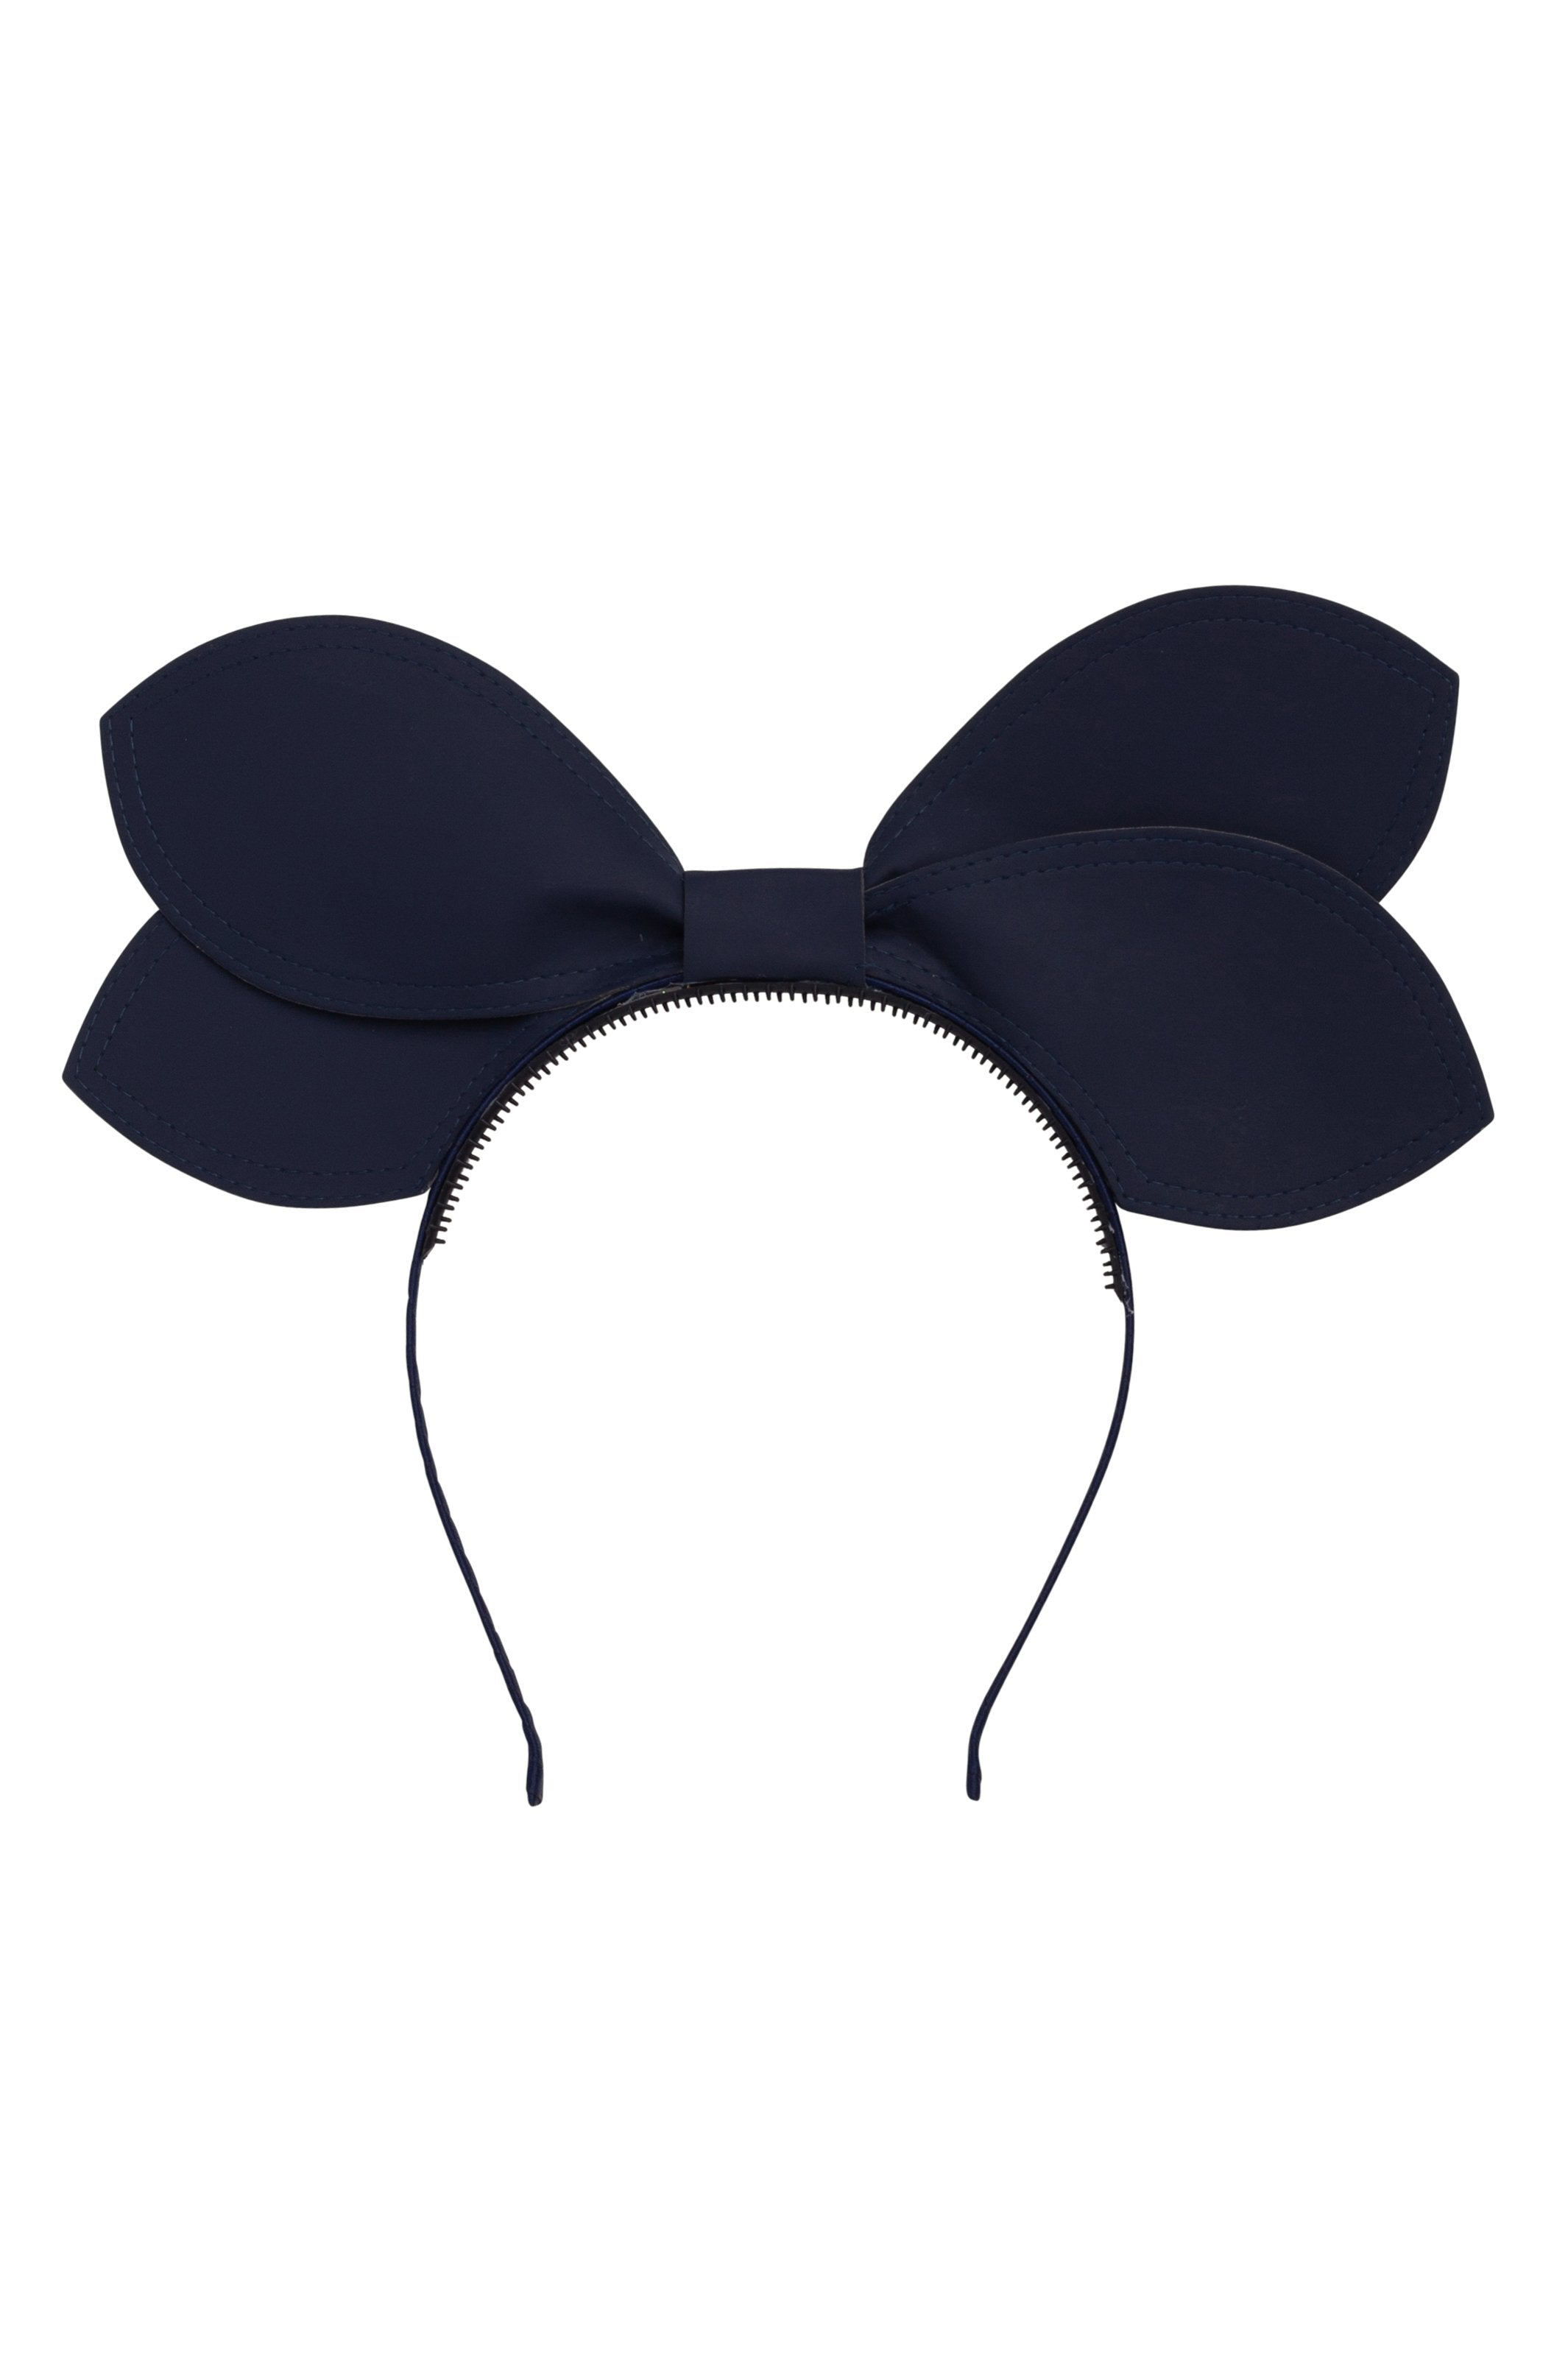 Growing Orchid Headband - Navy Leather